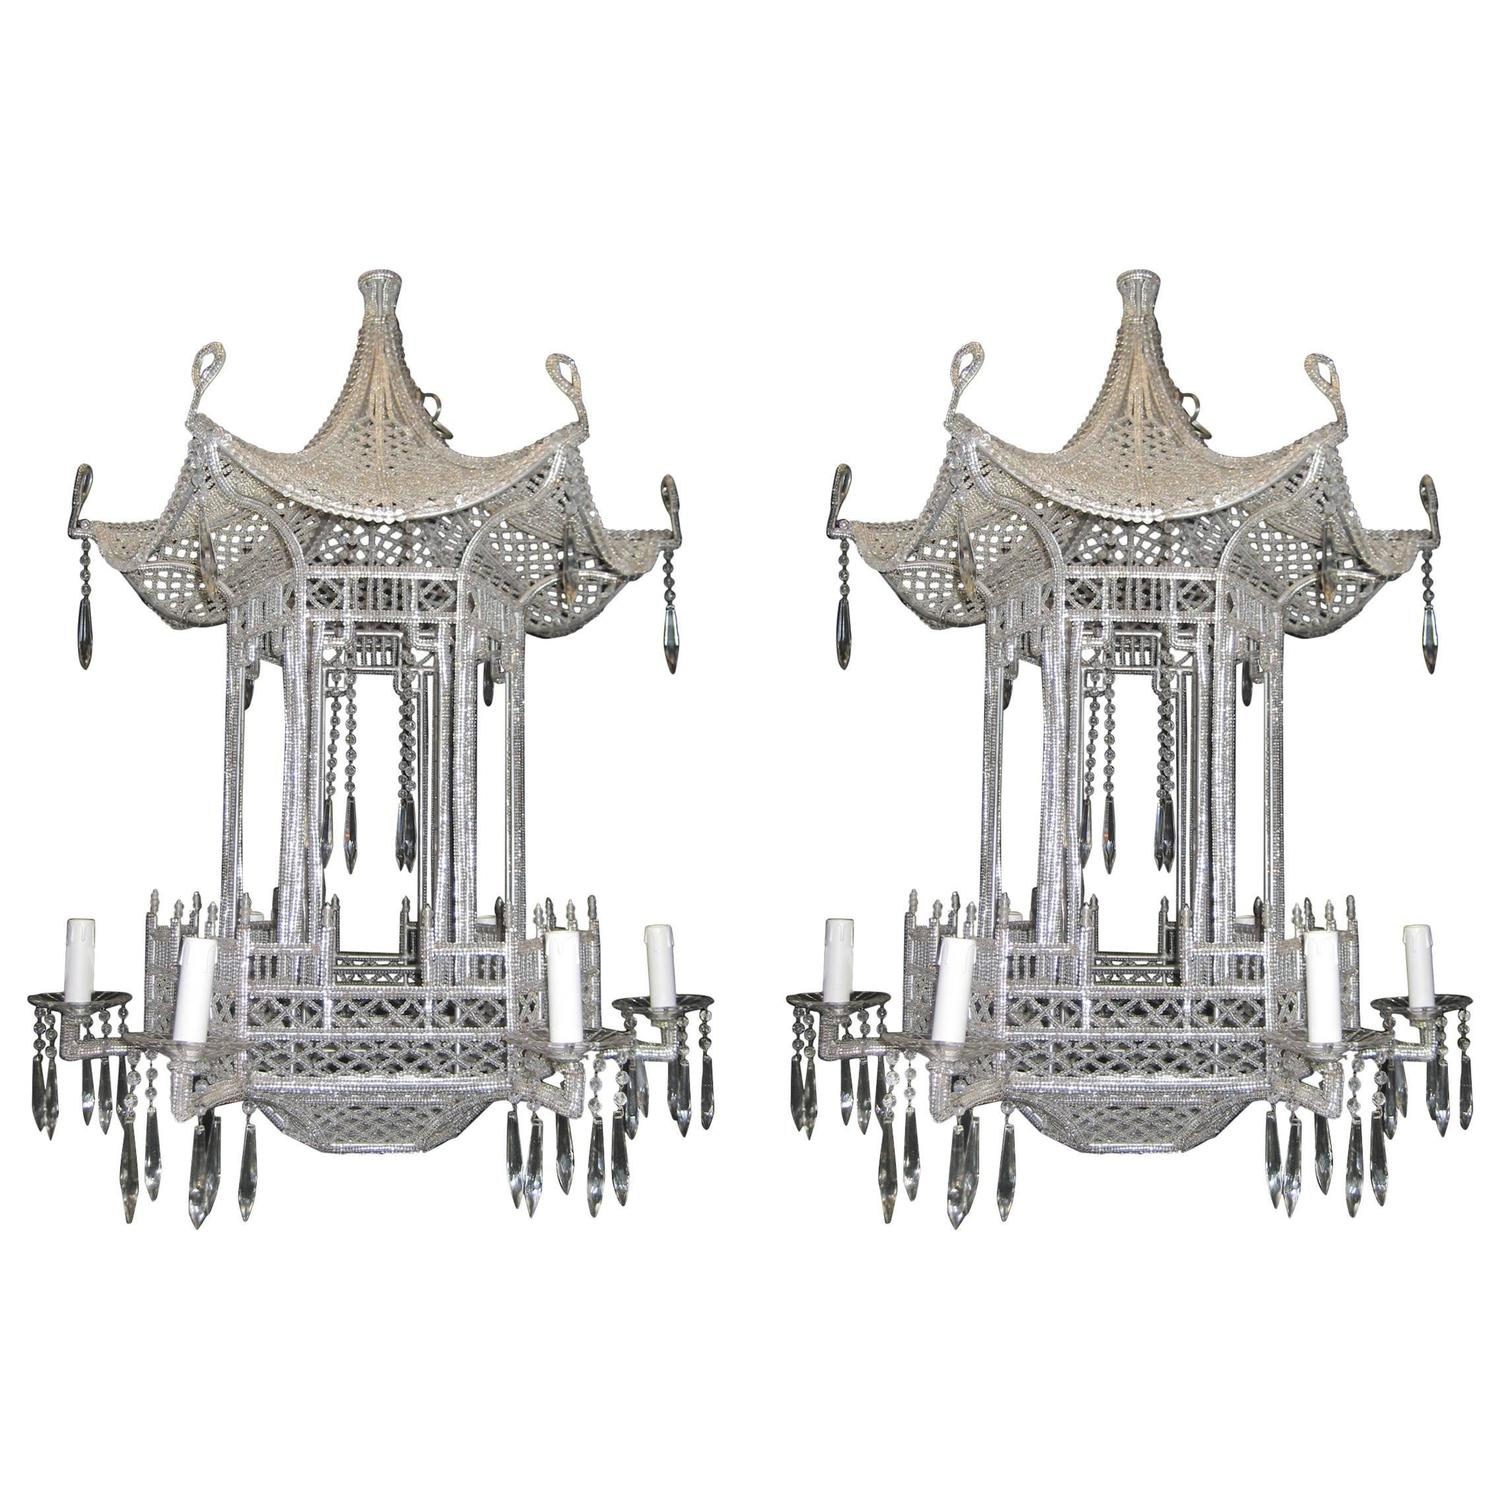 Pagoda shaped crystal chandelier for sale at 1stdibs aloadofball Choice Image